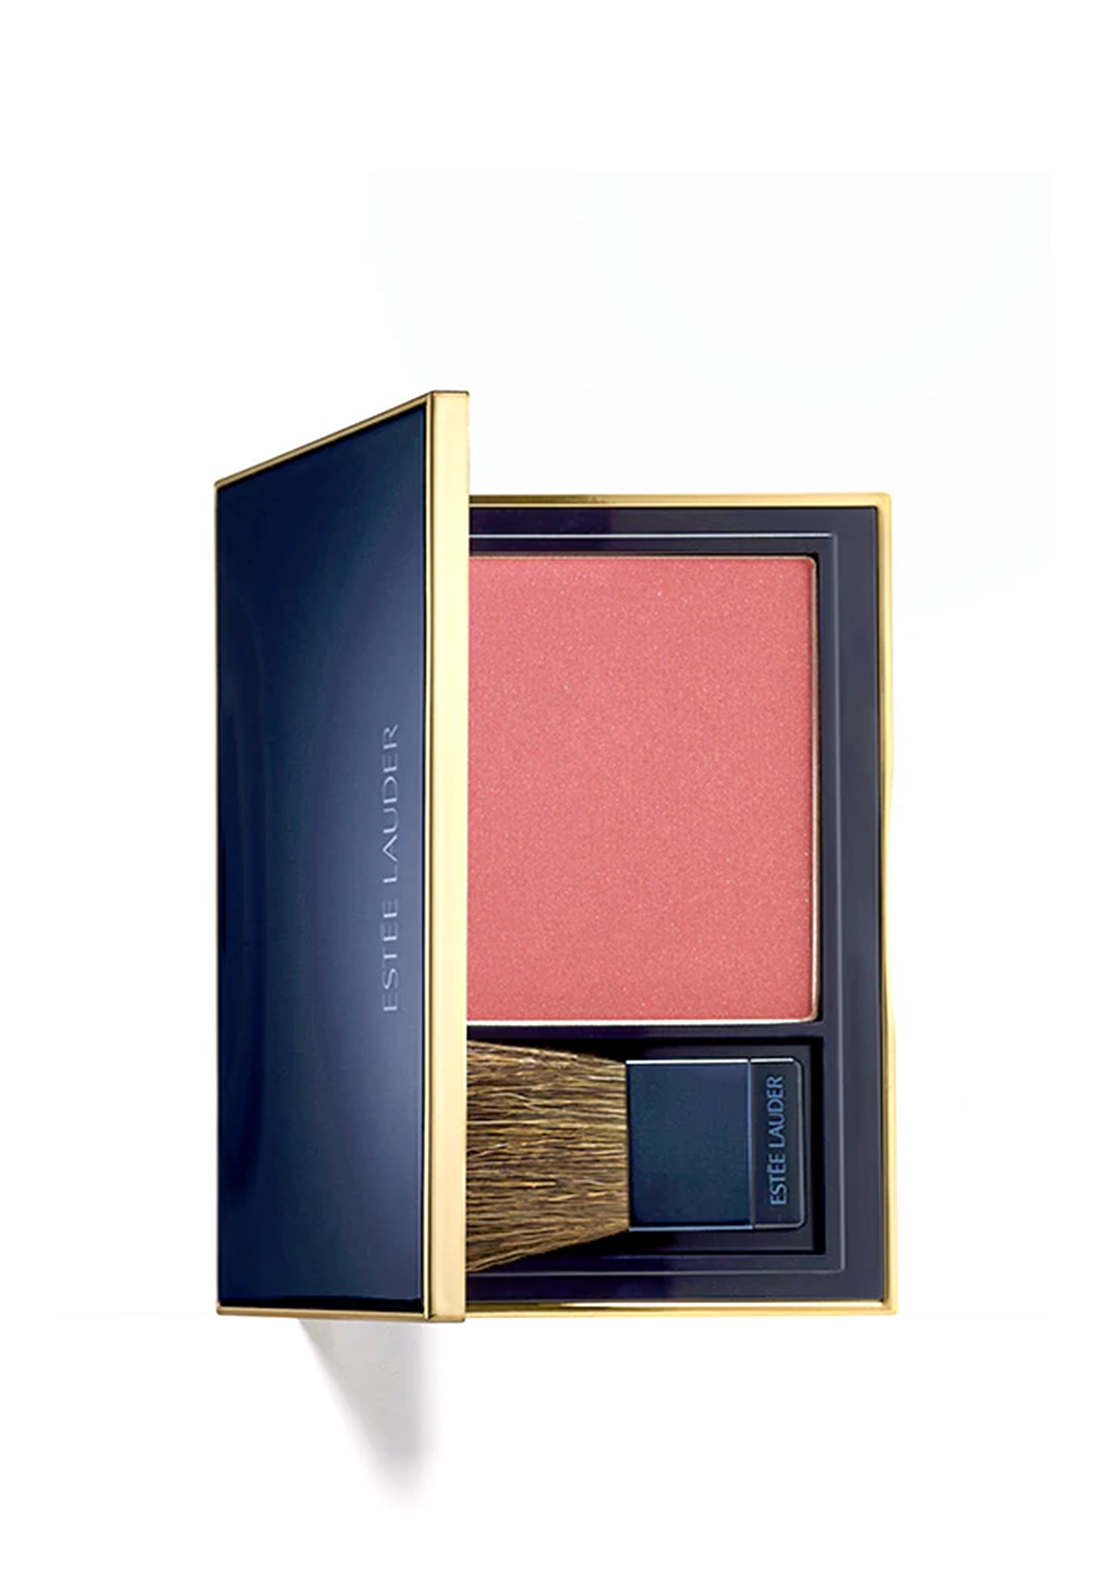 Estee Lauder Pure Colour Envy Shimmering BlushLights, Pink Kiss